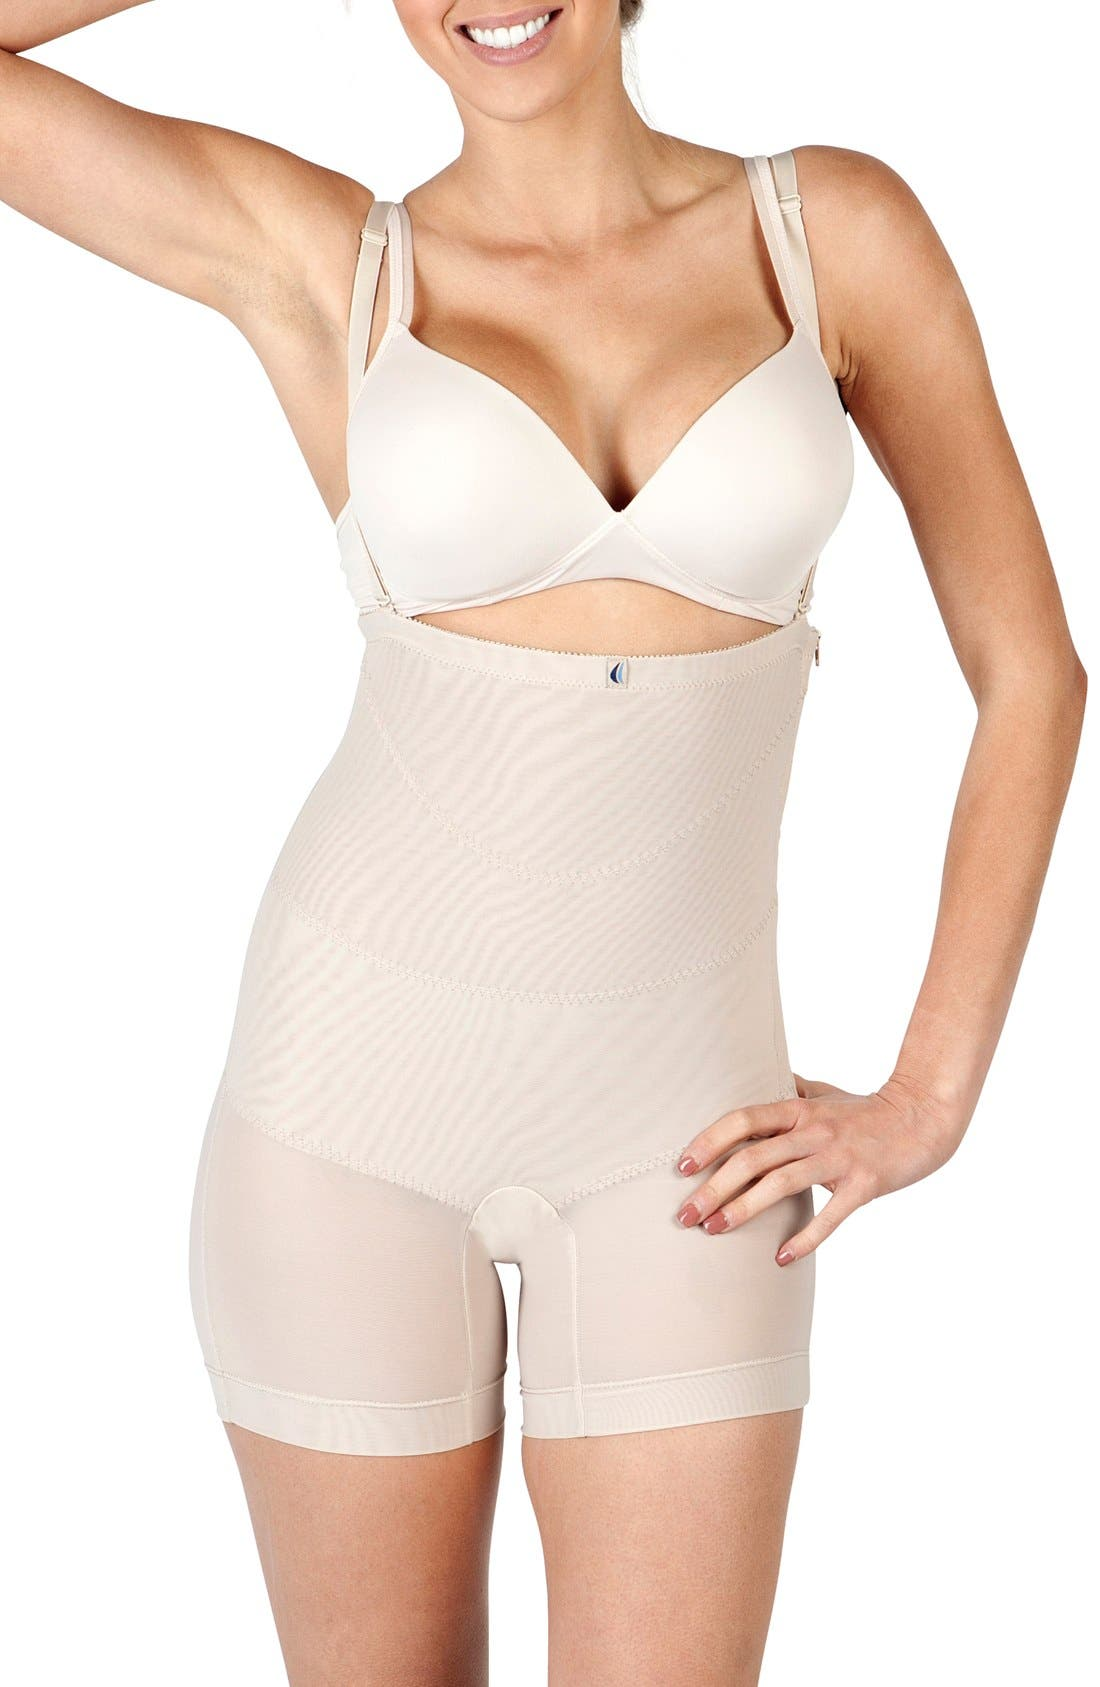 Main Image - Body After Baby 'Sienna' Post C-Section Garment